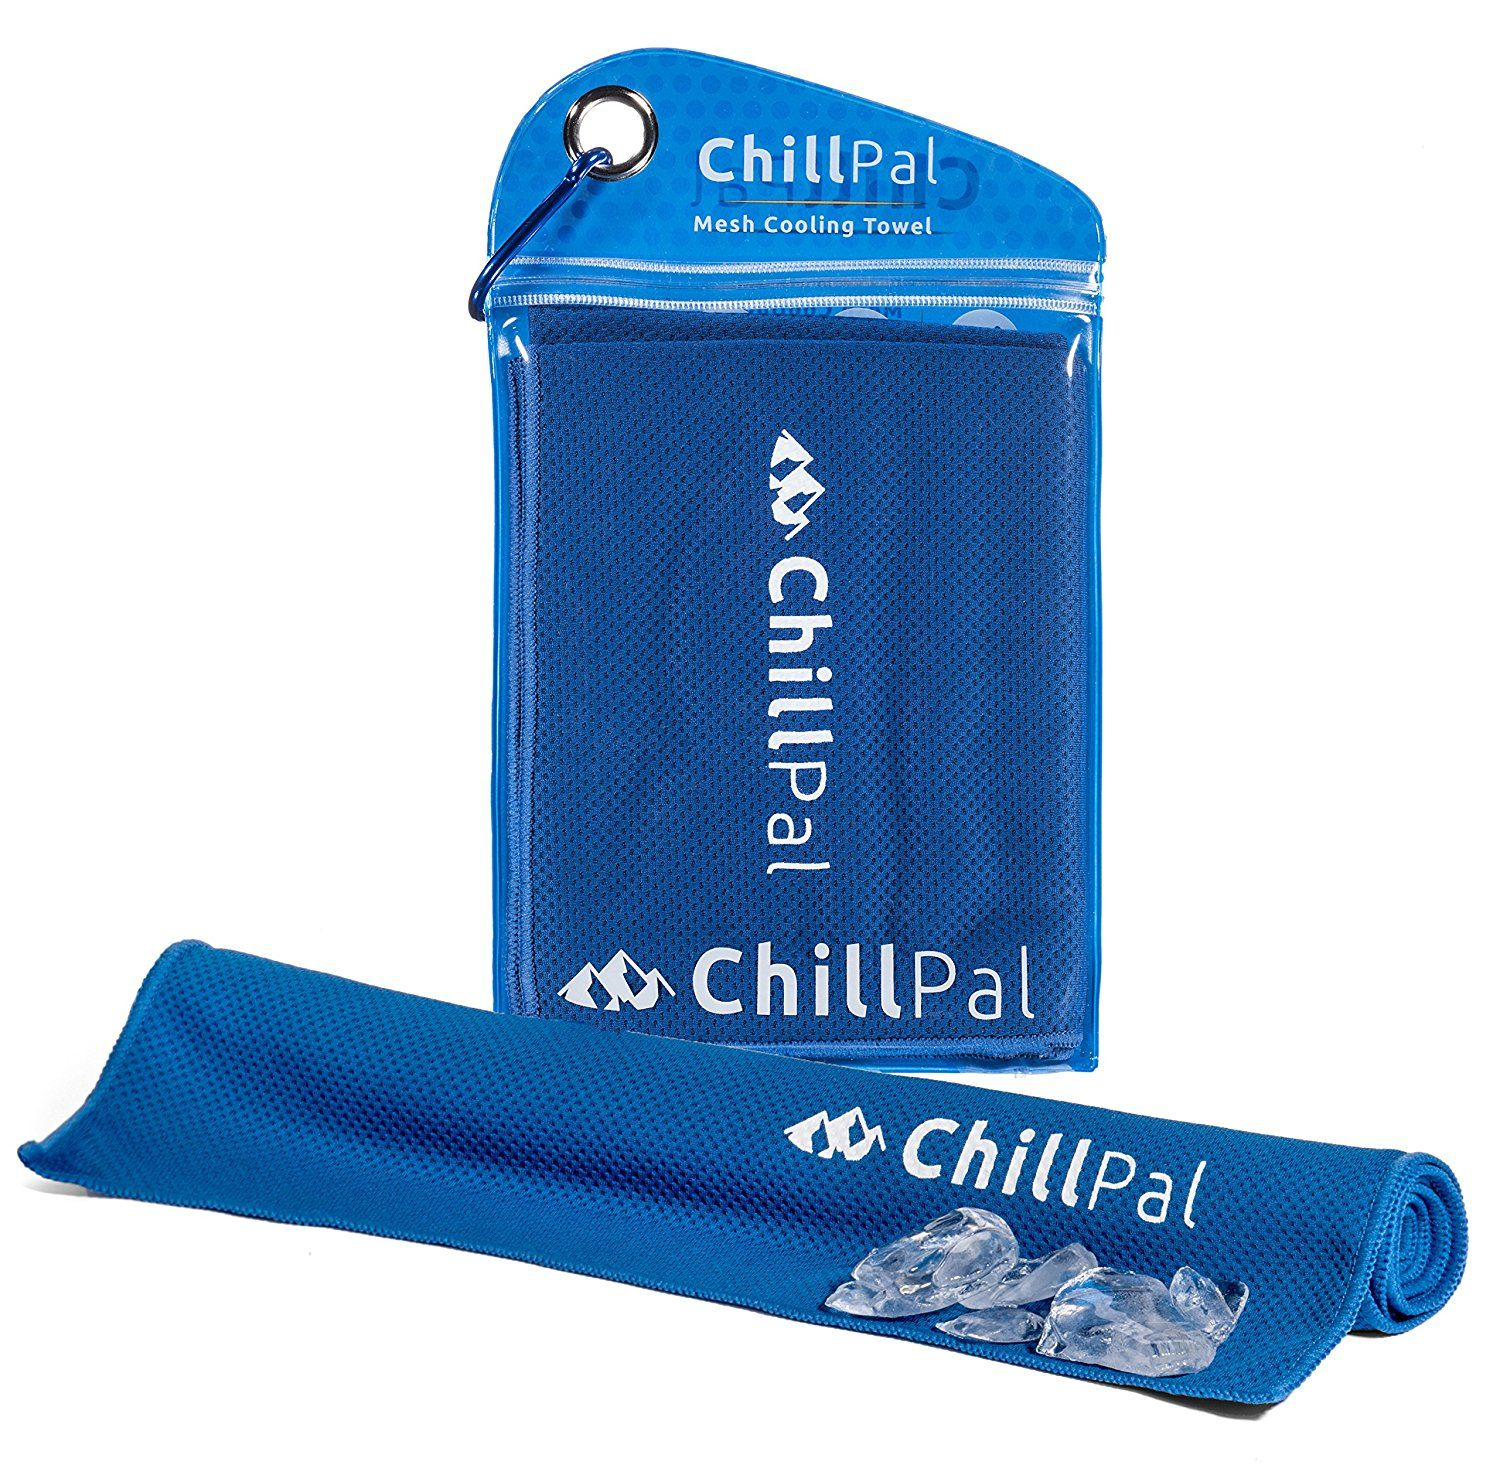 Chill Pal Mesh Cooling Towel A Stay Cool Evaporative Technology A Perfect For Running Camping Hiking Cold Towels Cooling Towels Gym Towel